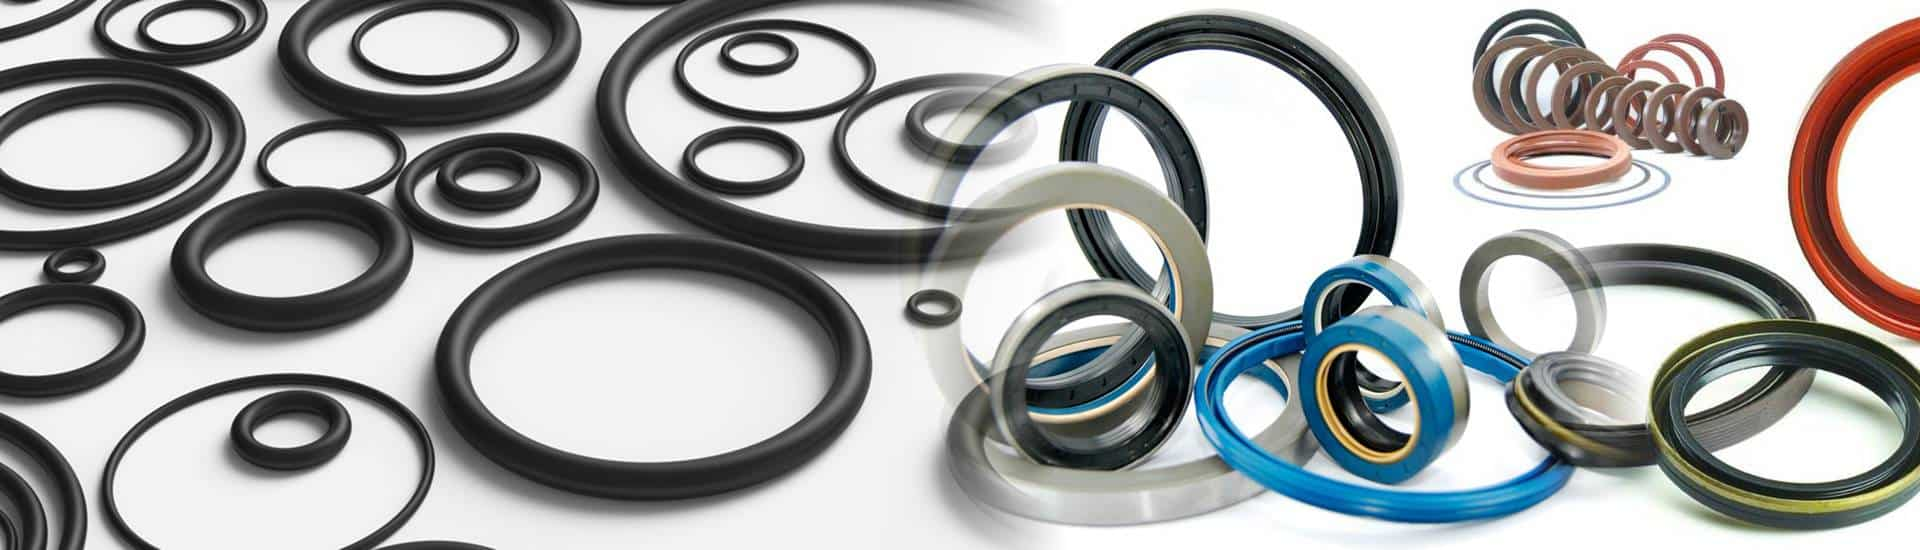 Leading provider of o rings oil seals sealing related products a leading provider of o rings oil seals and related sealing products nvjuhfo Image collections